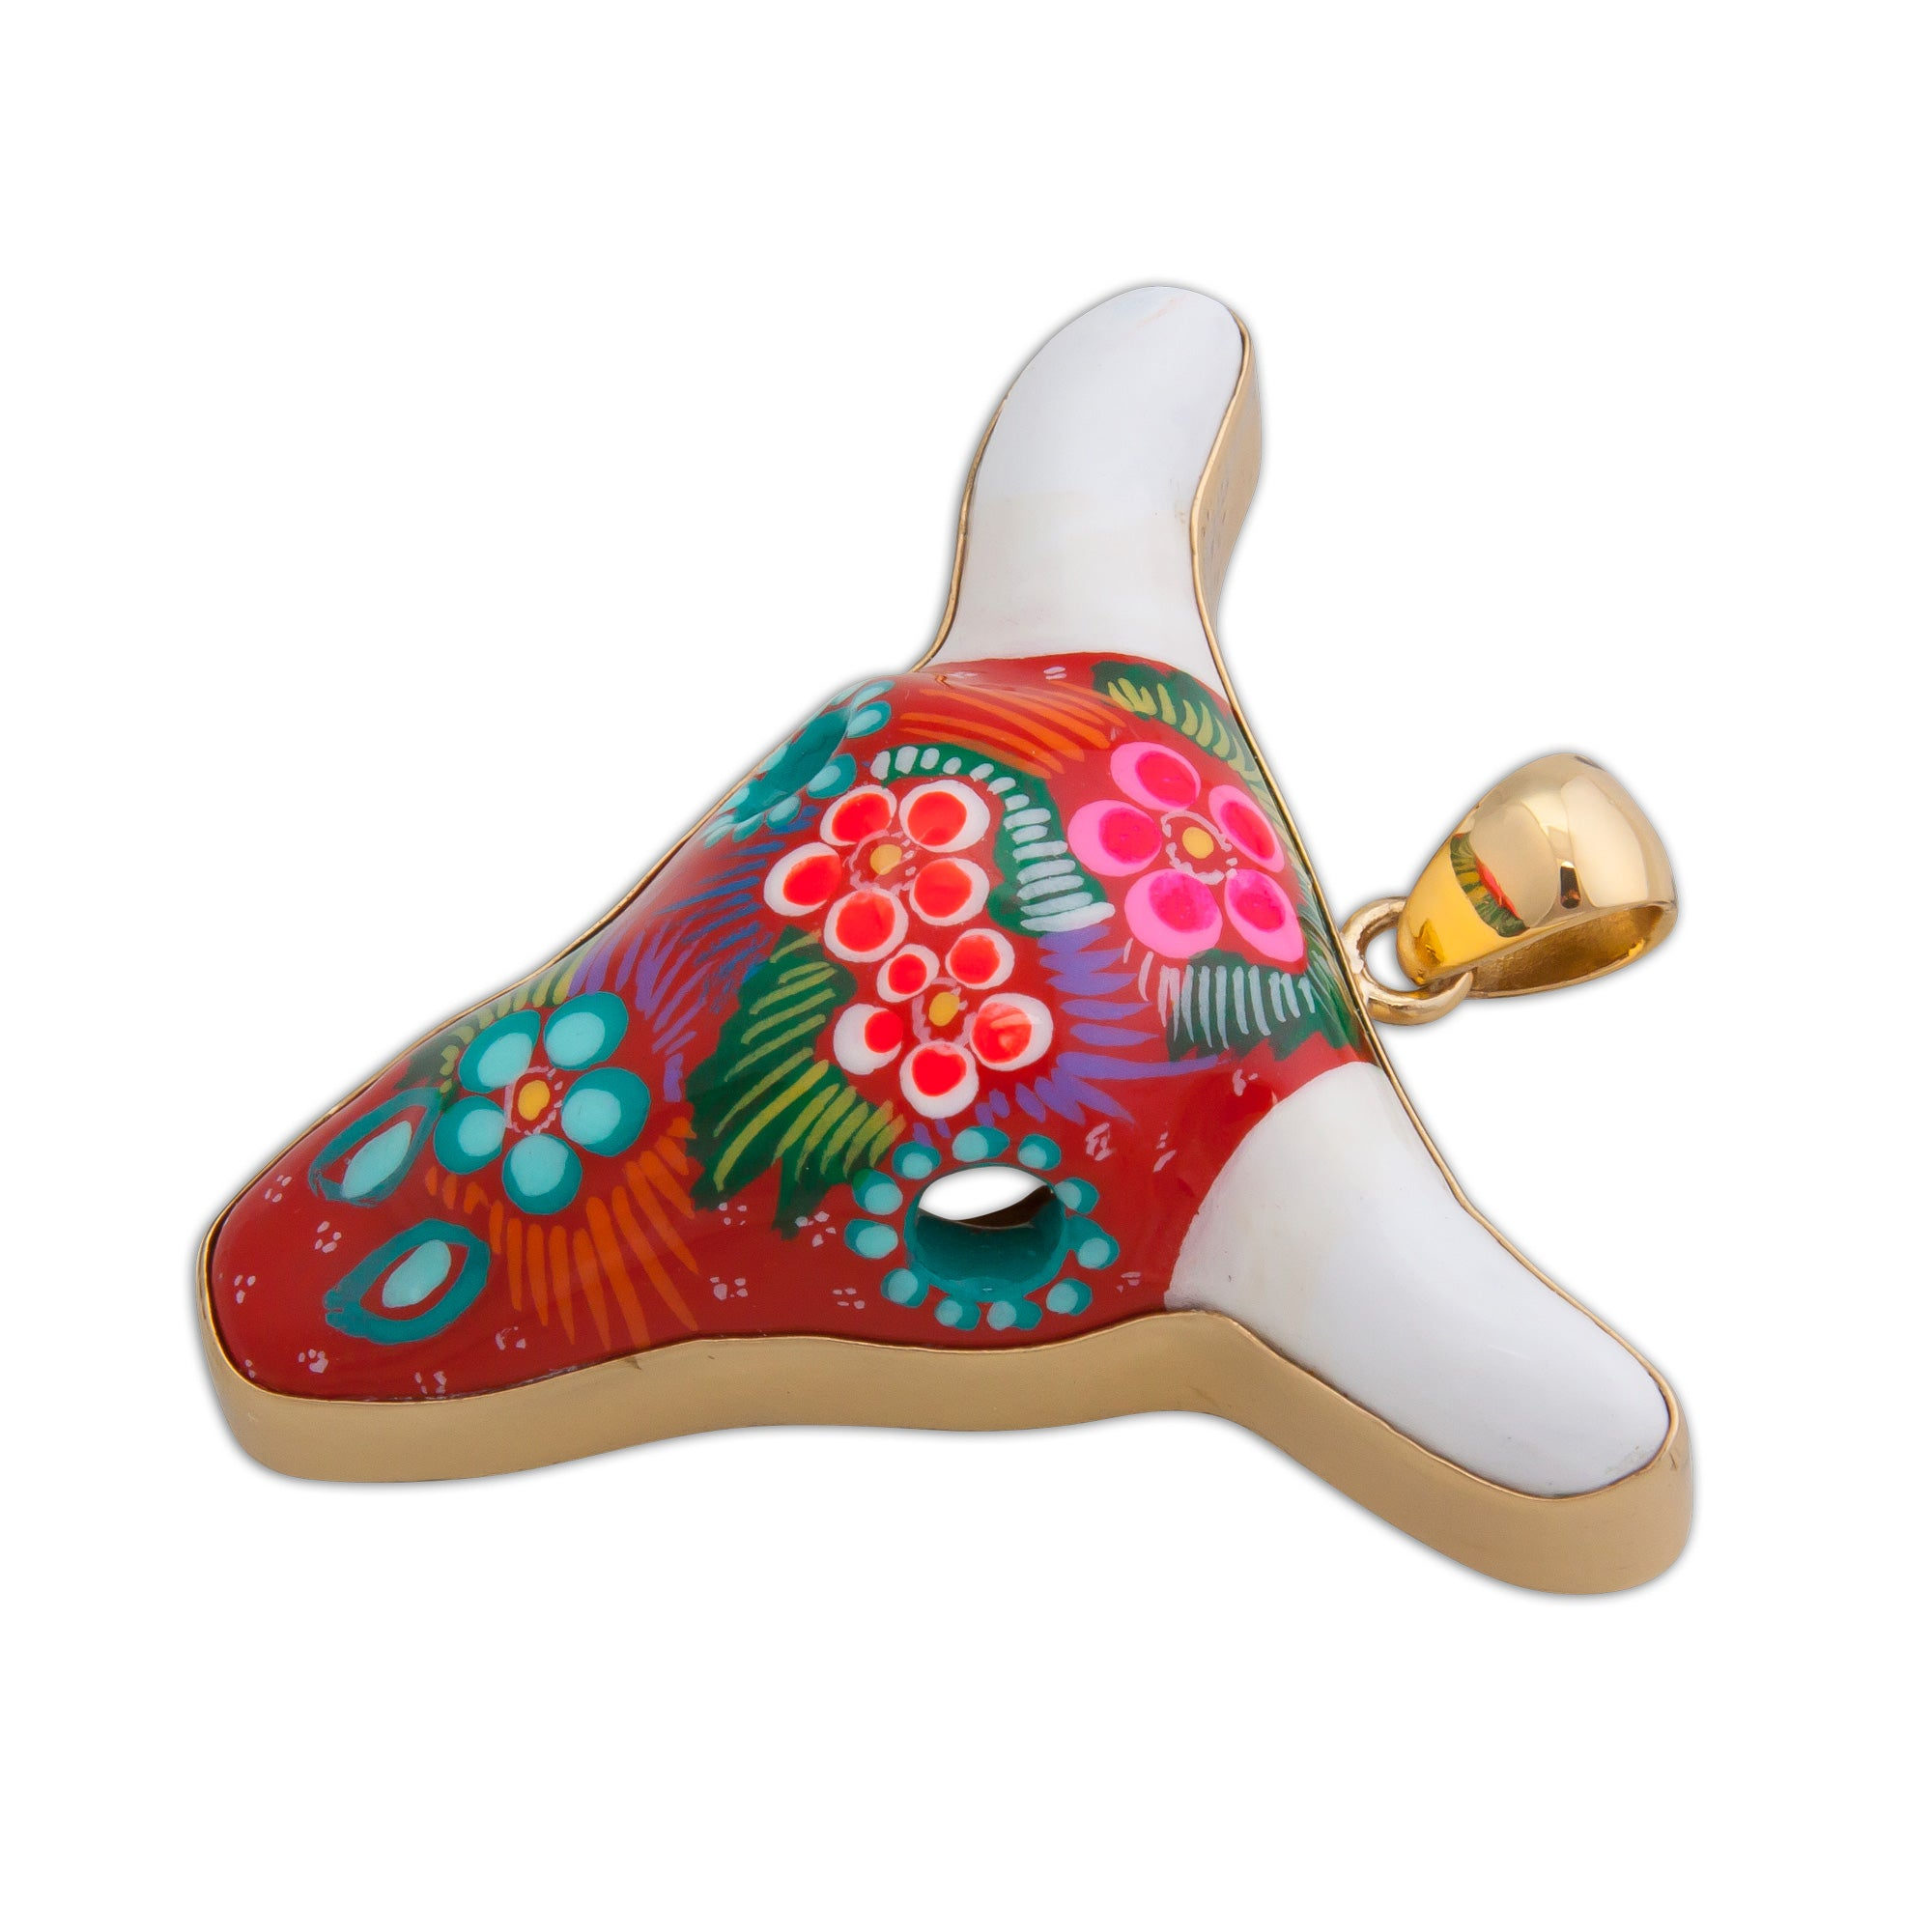 Alchemia-Hand-Painted-Red-Ceramic-Cow-Skull-Pendant-1-Charles Albert Inc